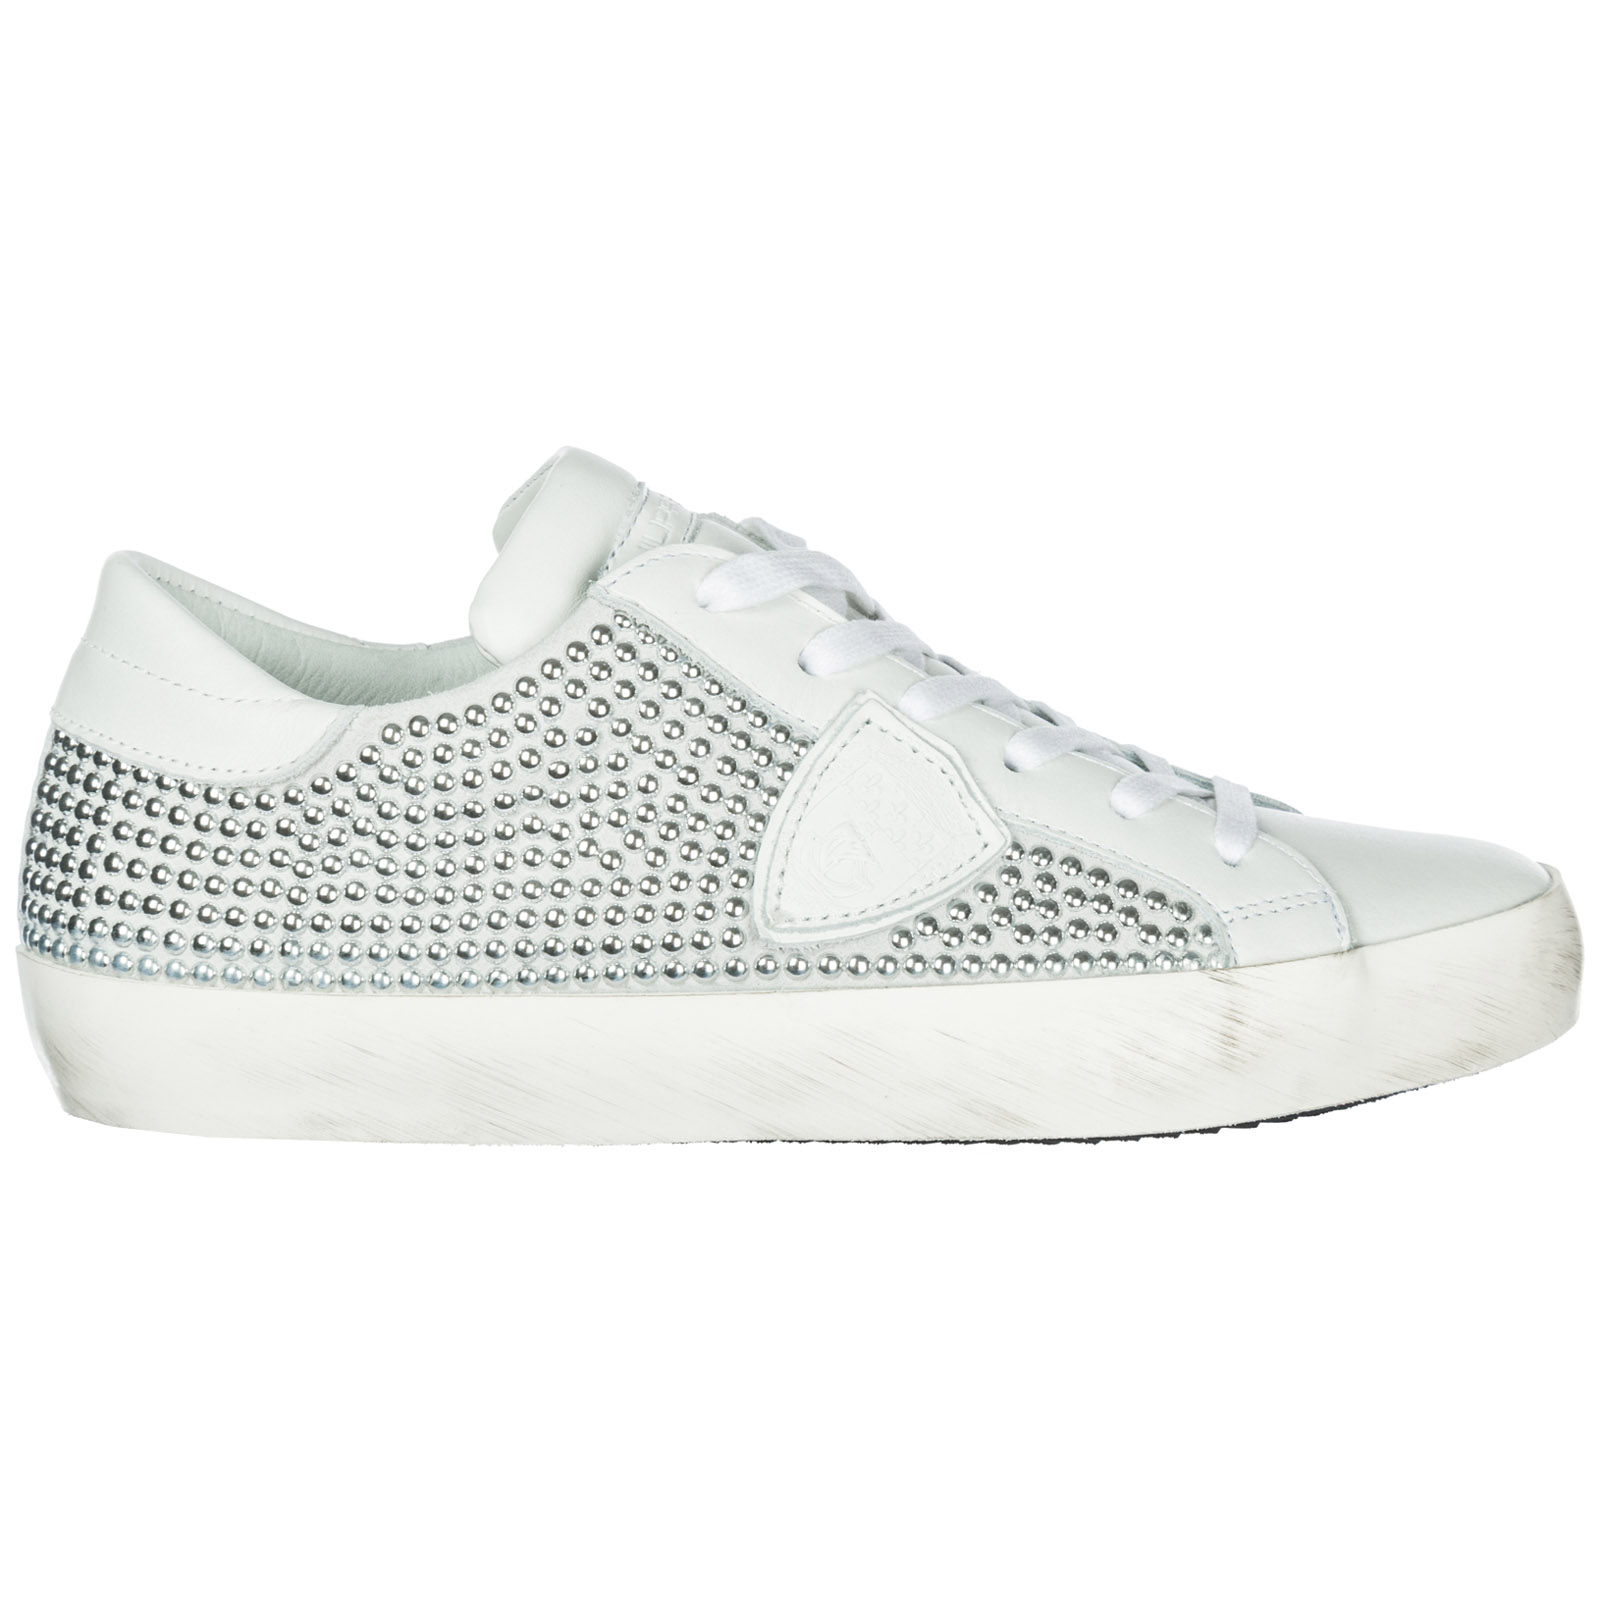 2b35ae871f136 Philippe Model Women s shoes leather trainers sneakers paris